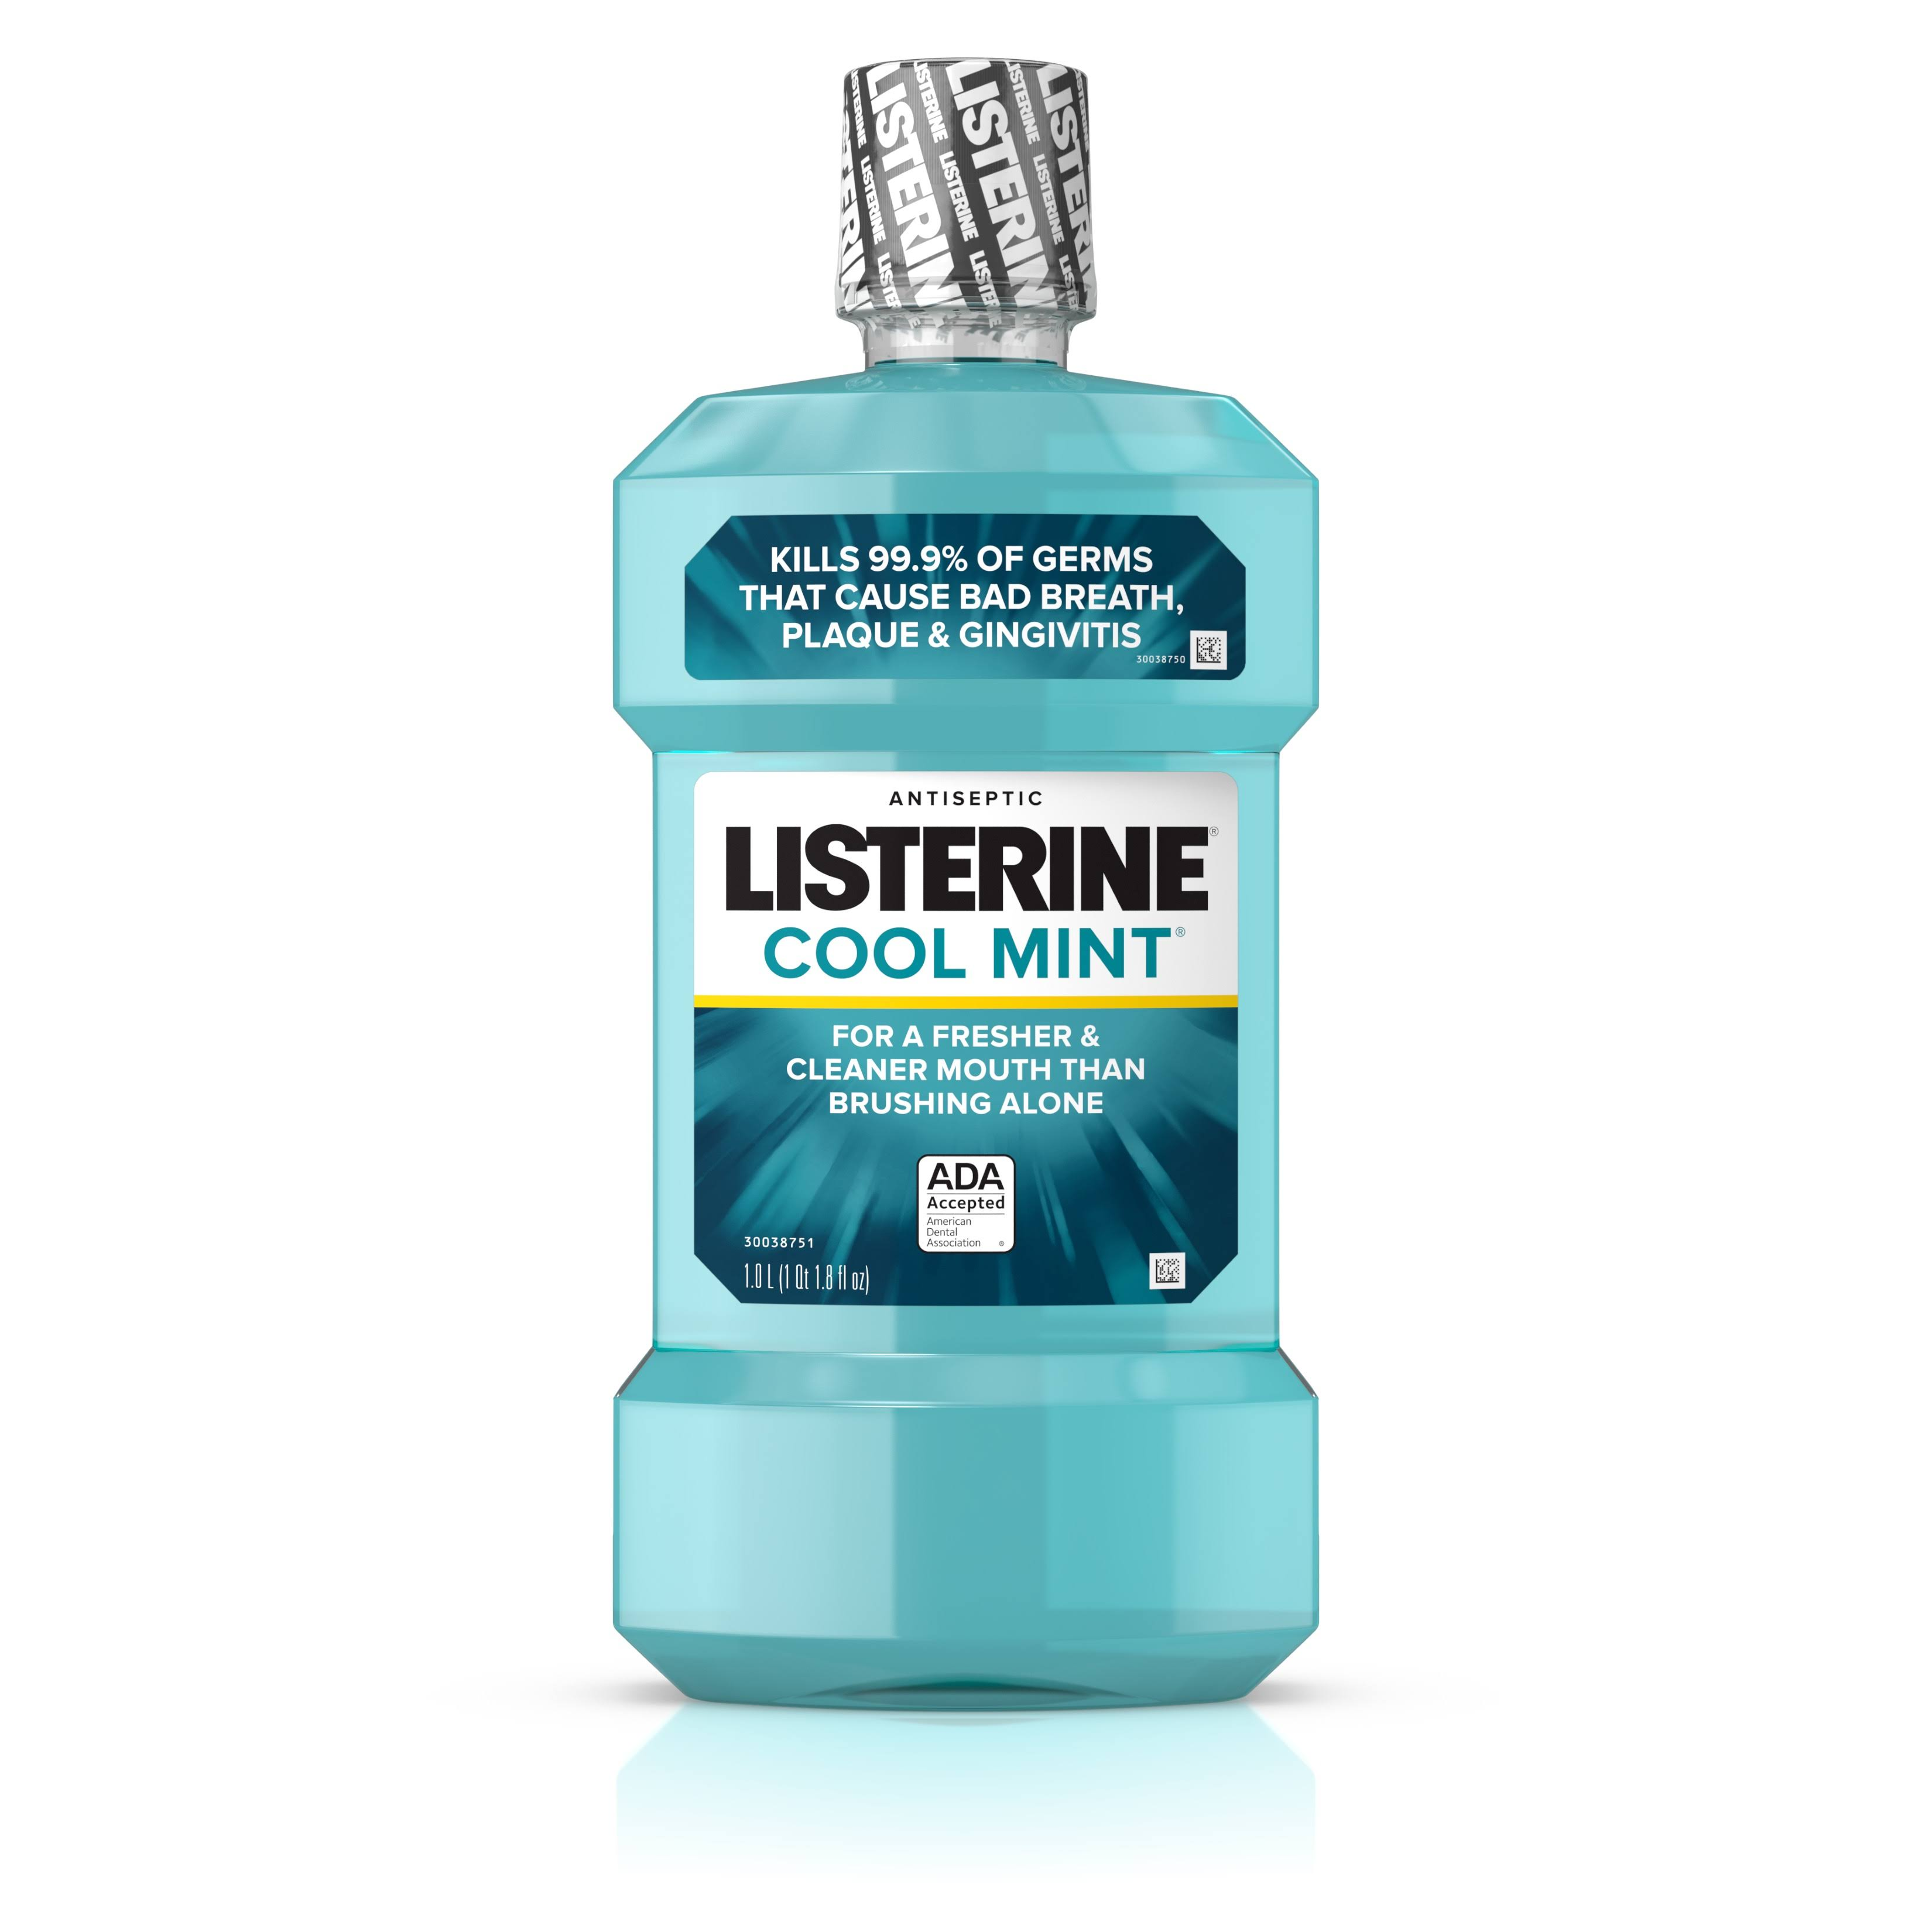 Listerine Antiseptic Mouthwash - Coolmint, 1l